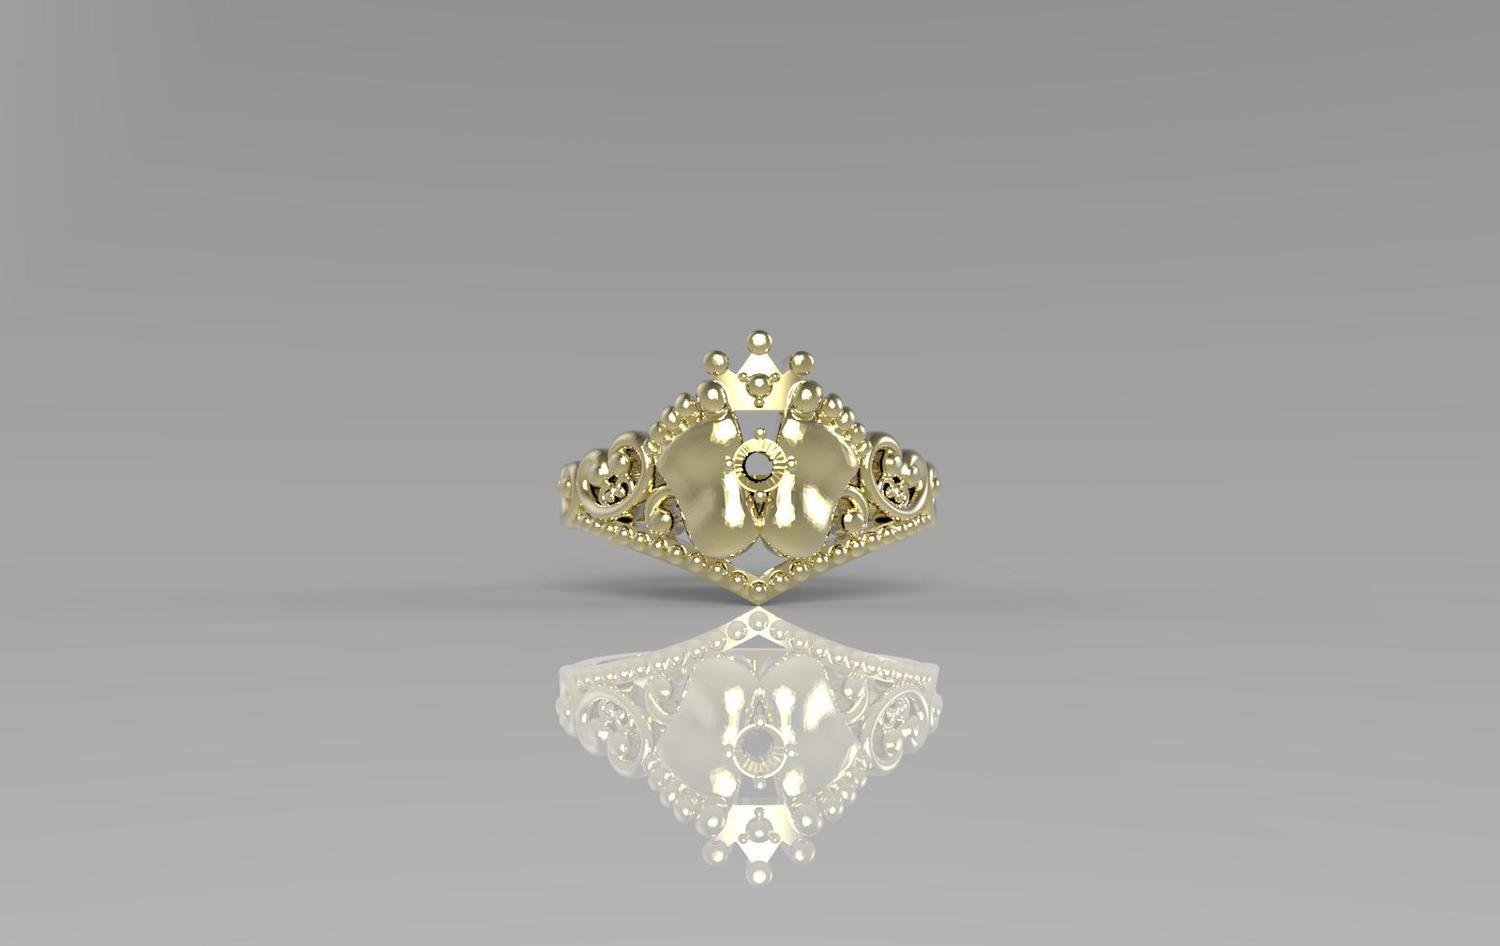 3D CAD Model of Anniversary Ring with Diamond